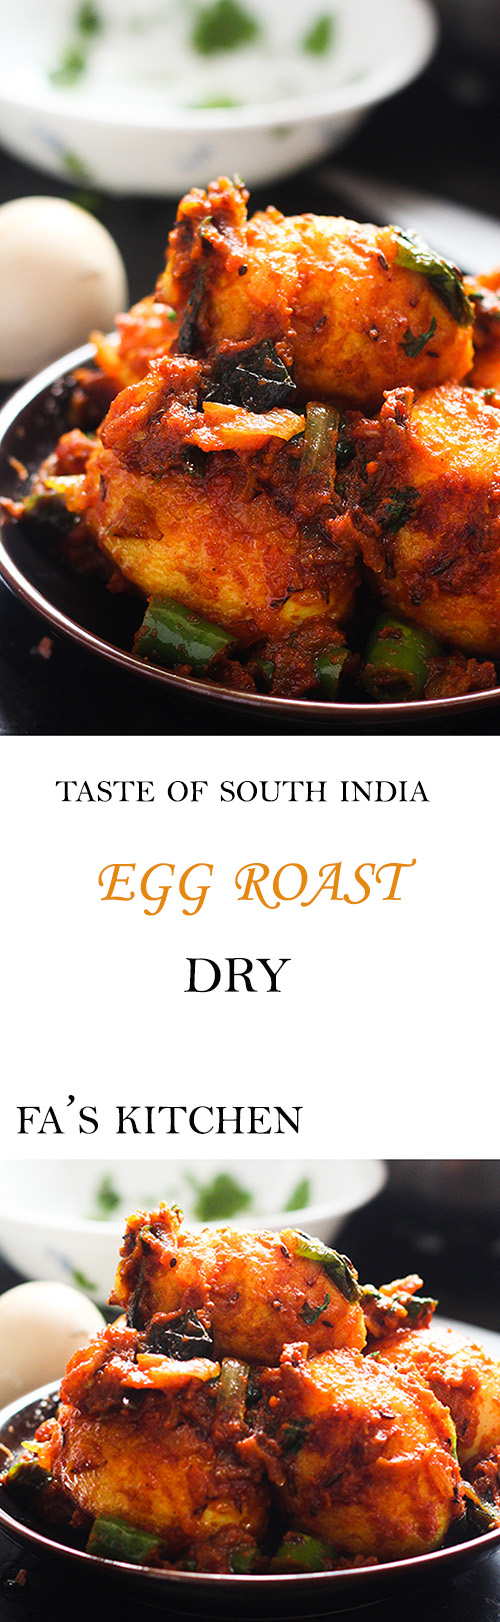 Egg roast dry is a delicious and simple dish full of flavors. This tasty egg recipe is a delight to serve to guests.